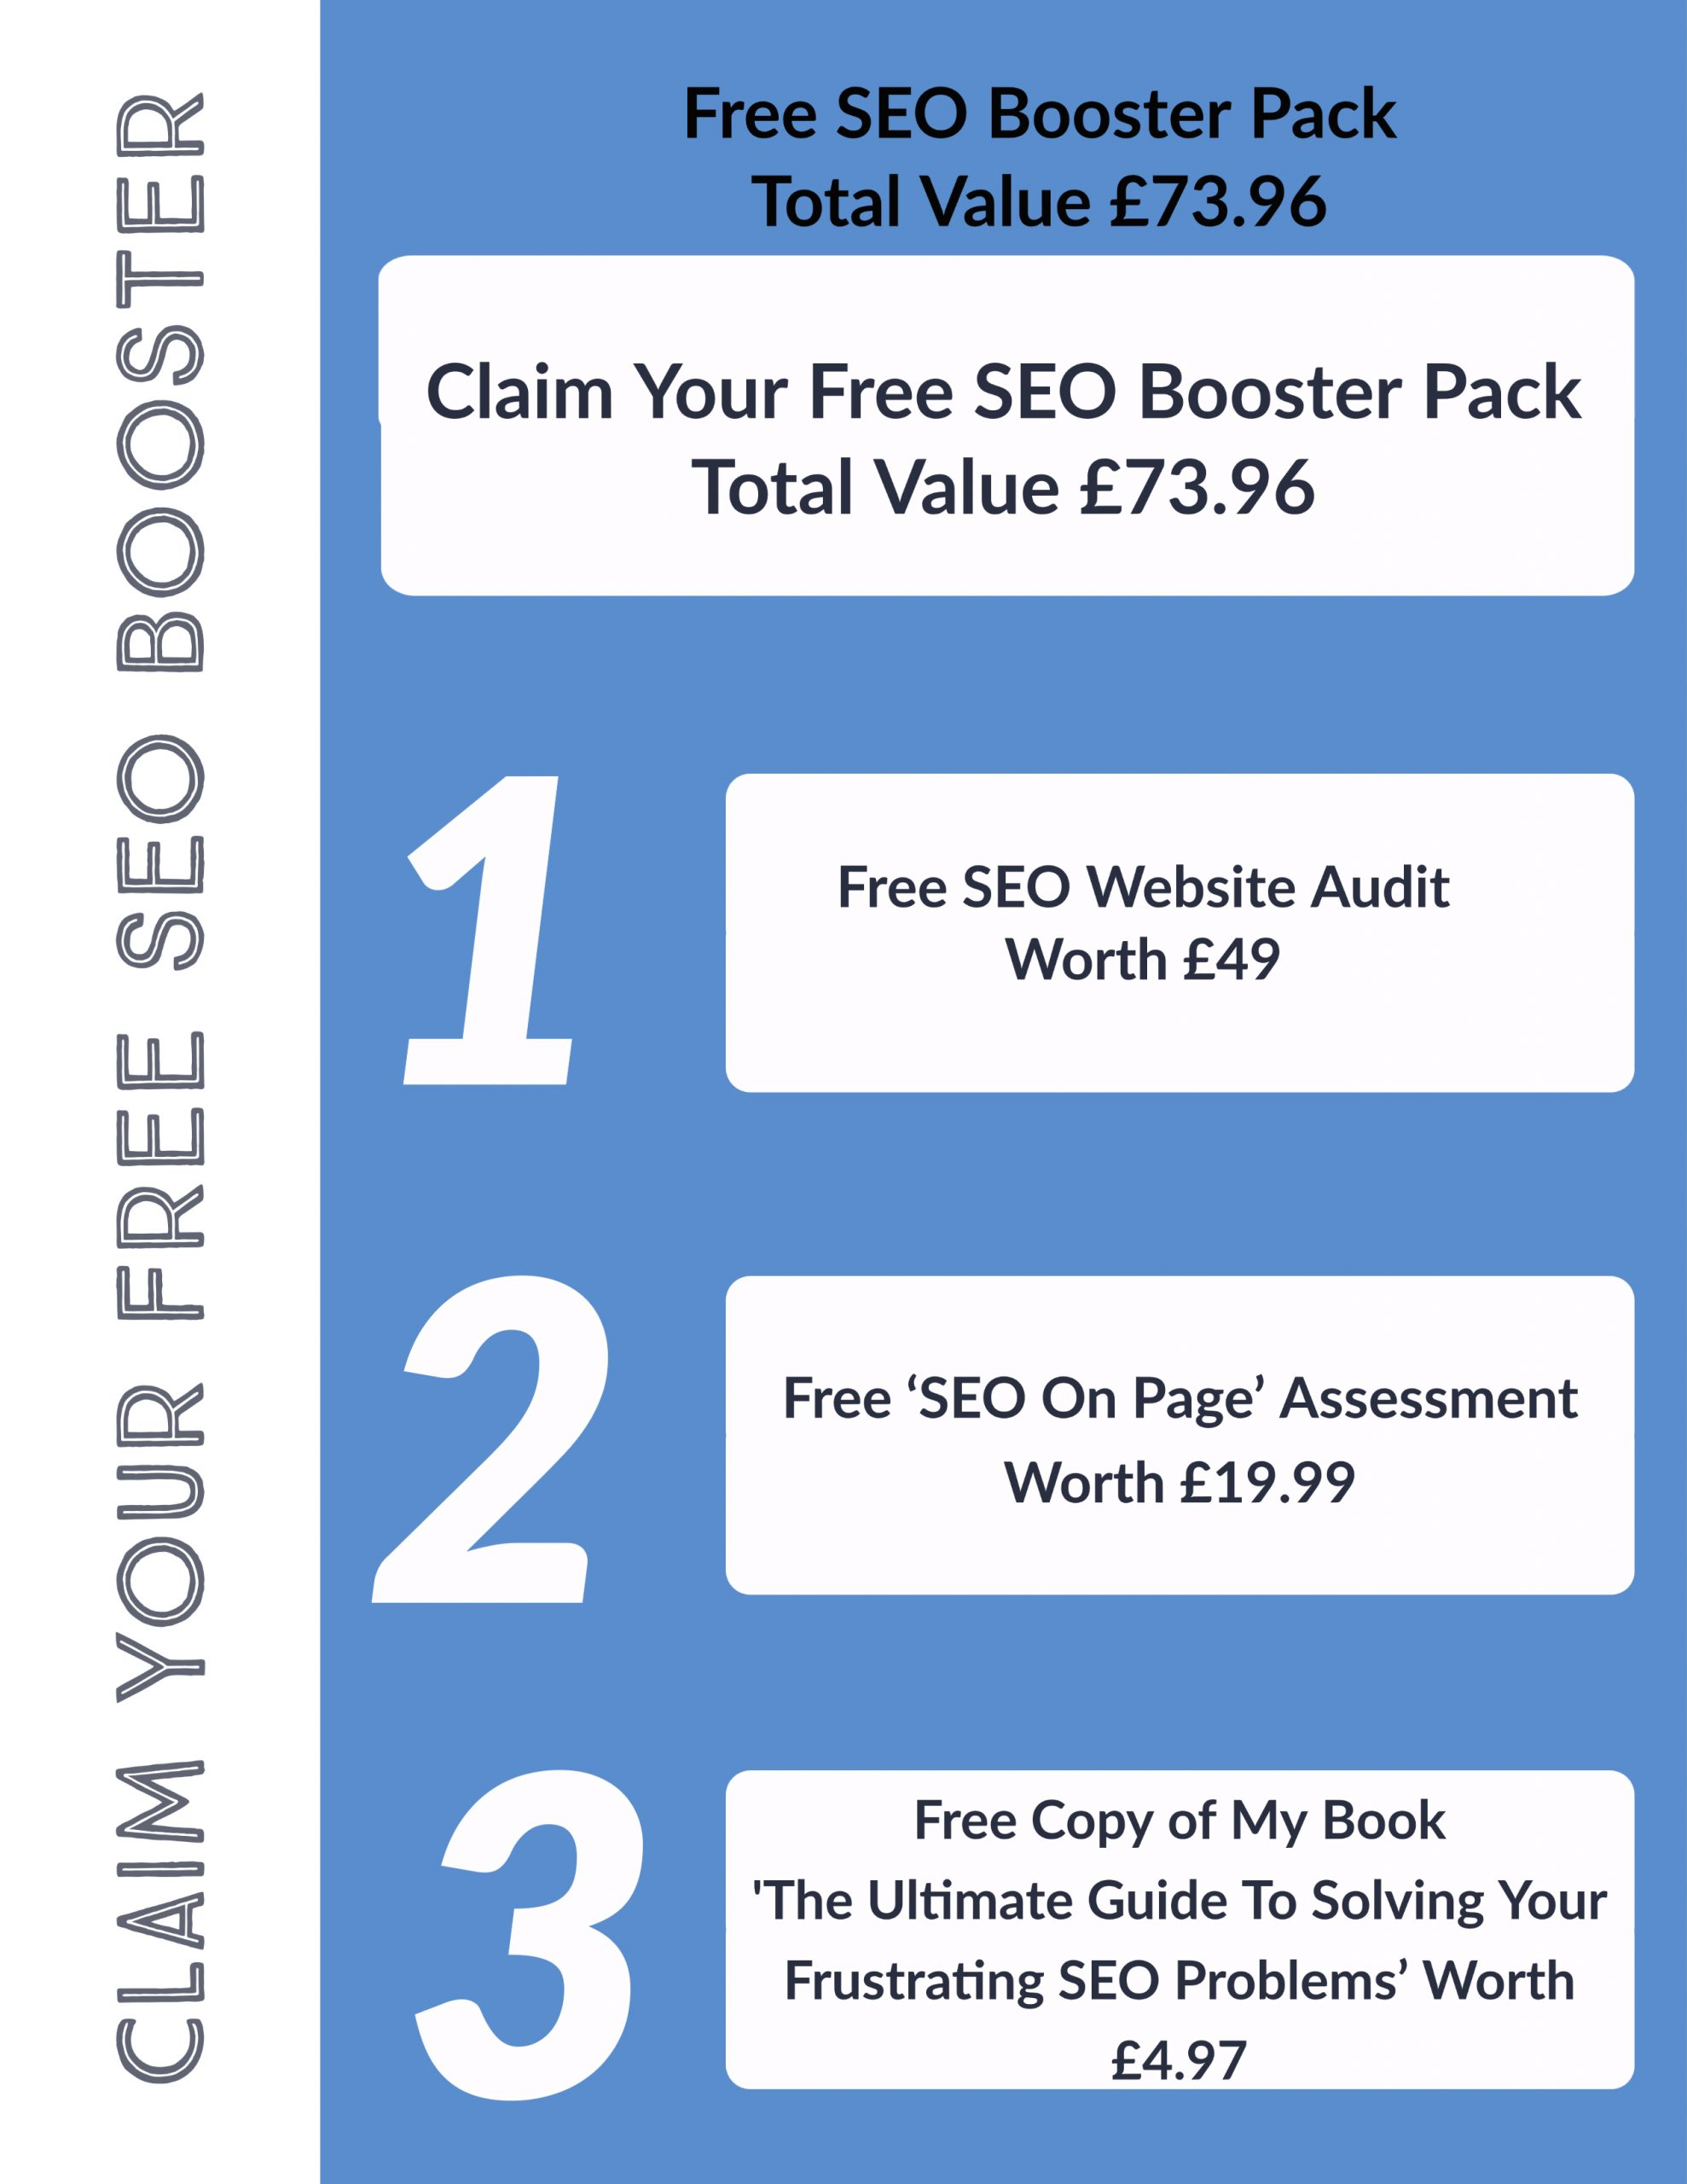 Free SEO Booster Pack Worth £73.96